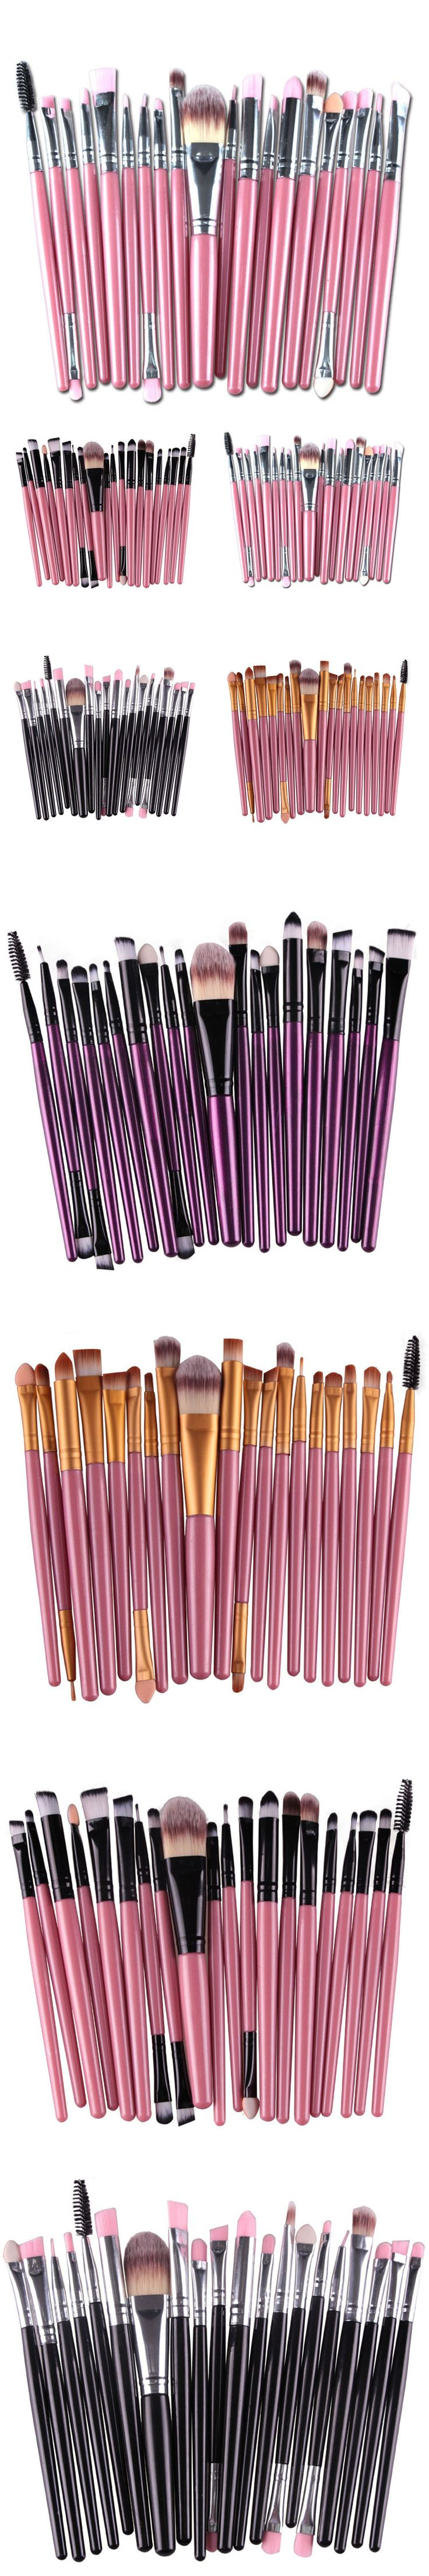 20pcs/set  Makeup Brush Set tools Make-up Toiletry Kit Wool Make Up Brush Set makeup kwasten pinceis de maquiagem maquillaje